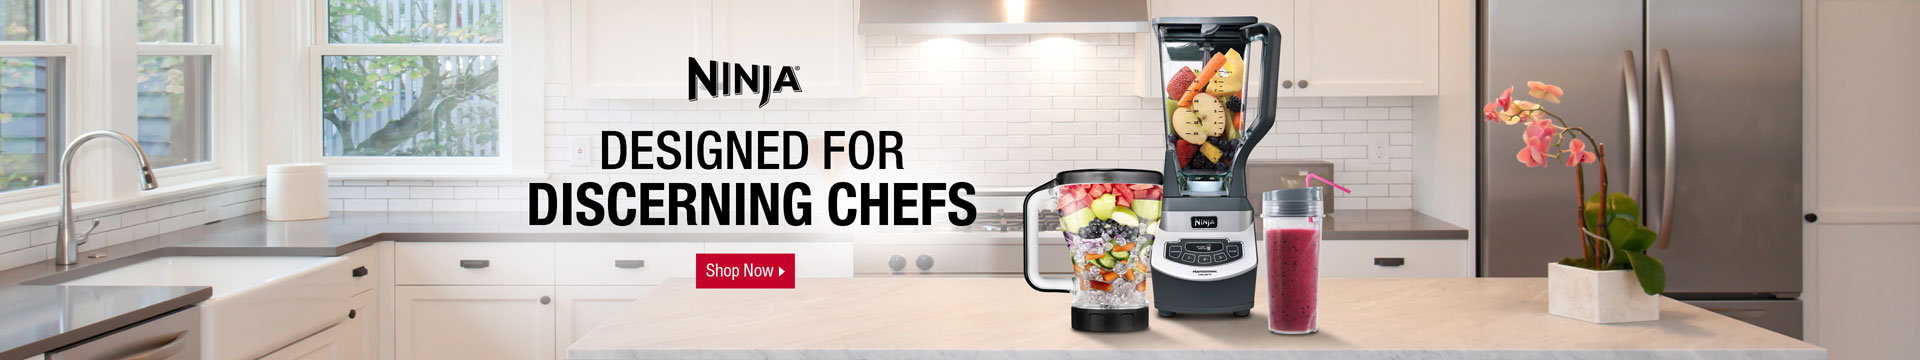 Designed for discerning chefs